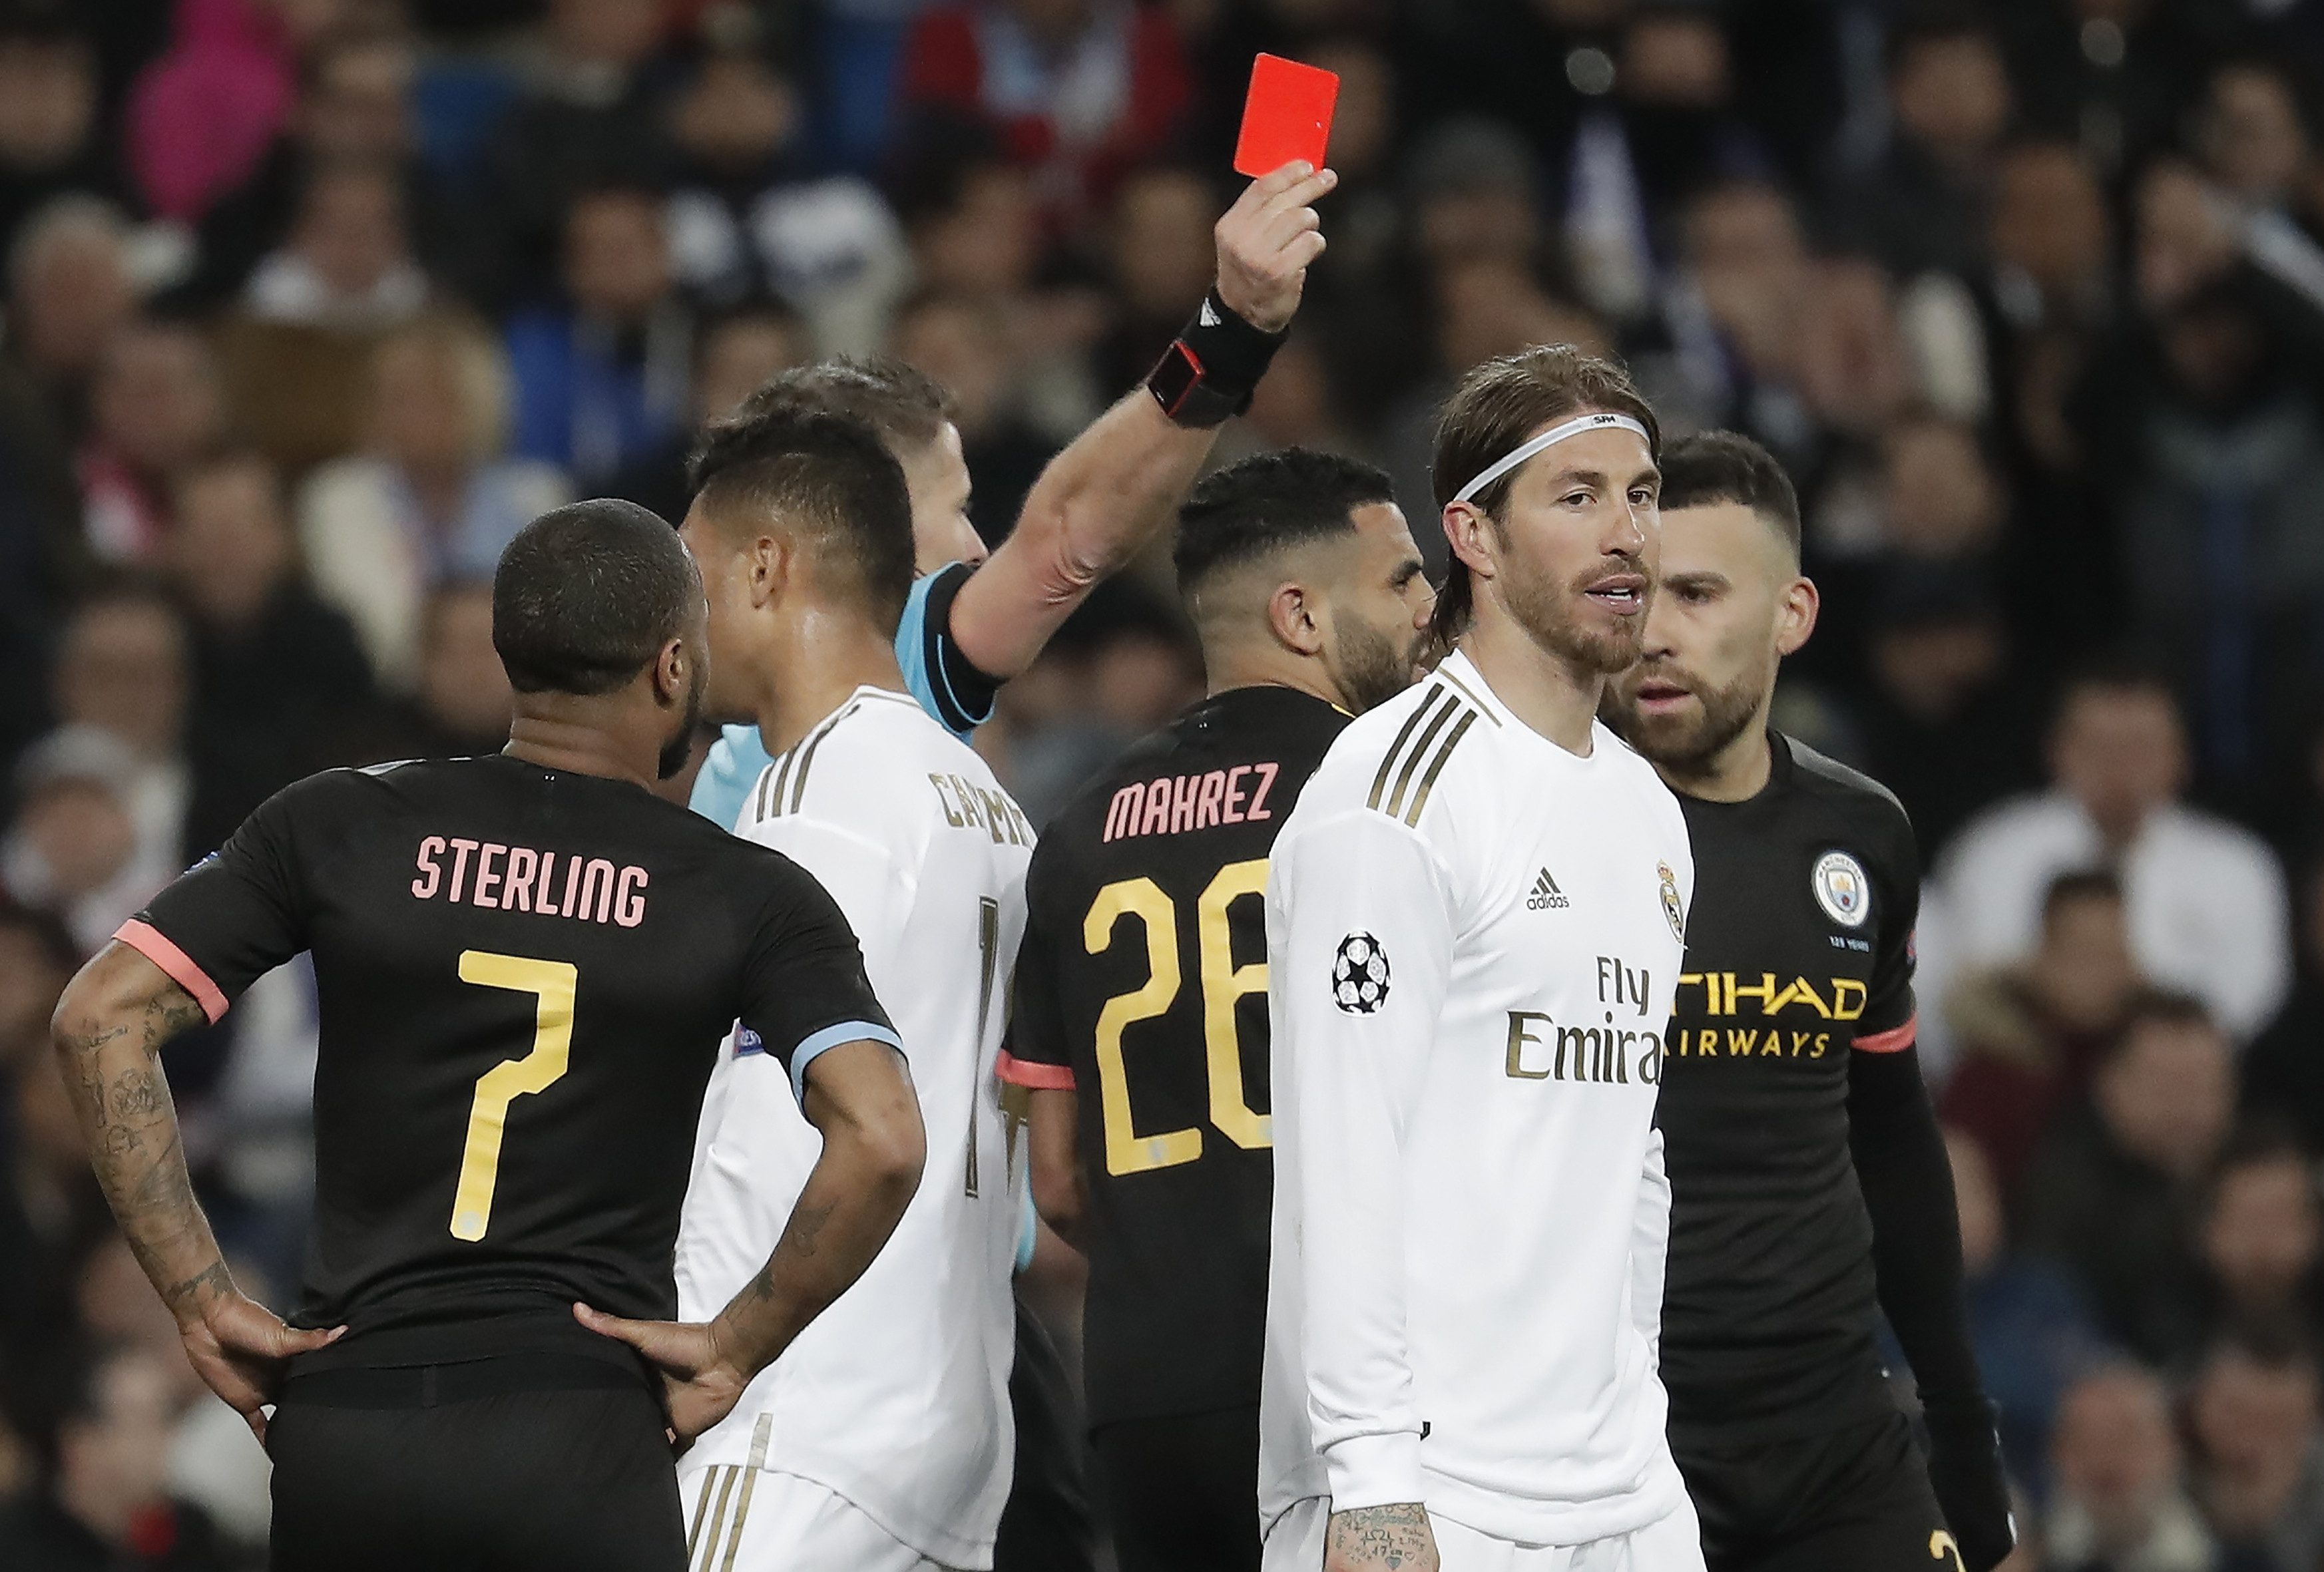 Sergio Ramos was sent off – again – during Real Madrid's Champions League defeat to Man City